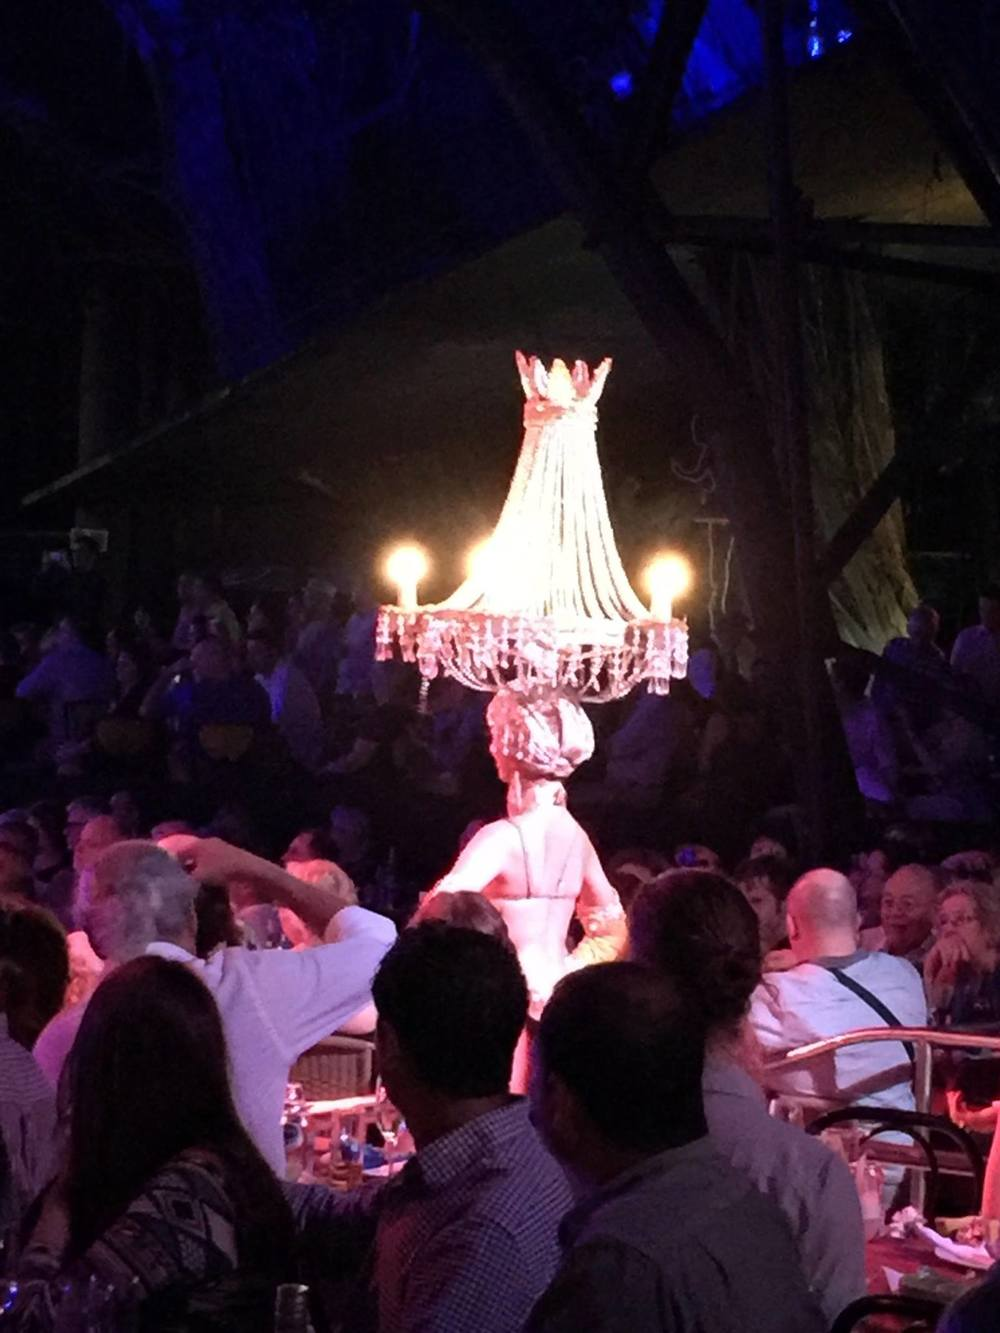 At the Tropicana, we saw garrish outfits, you know like when you need to go out in a dark place but want to be fancy - you must wear your favorite chandelier.